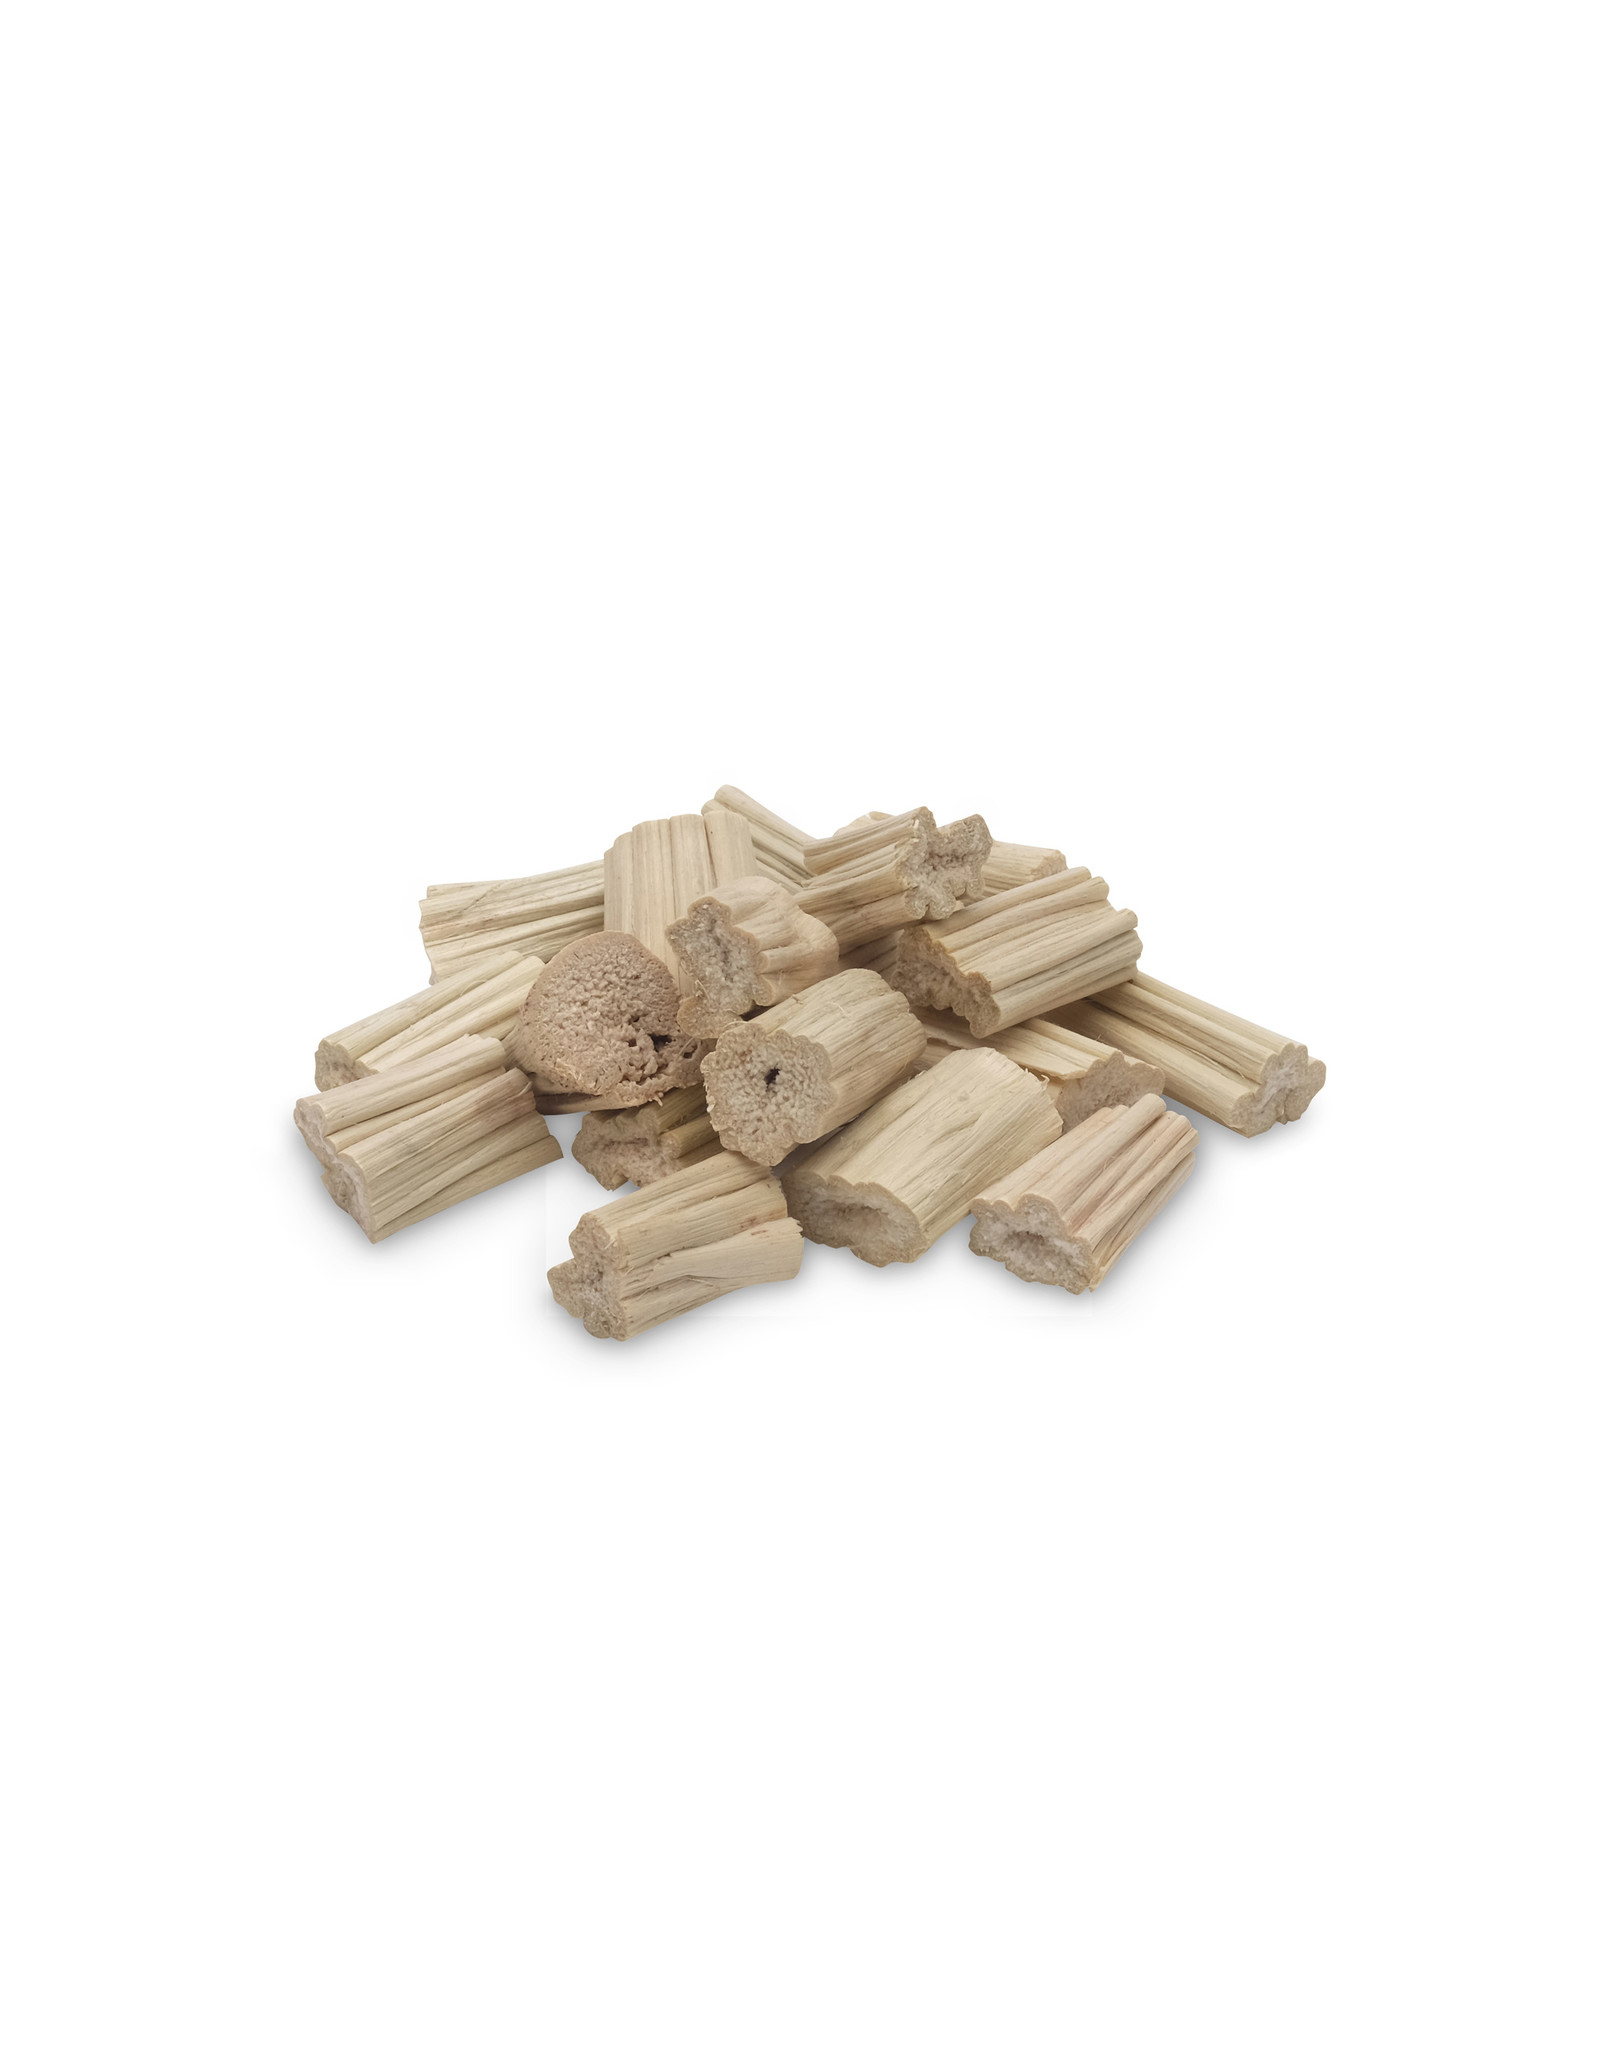 Living World LIVING WORLD Small Animal Chews Sugar Cane Stalk Cubes 40g